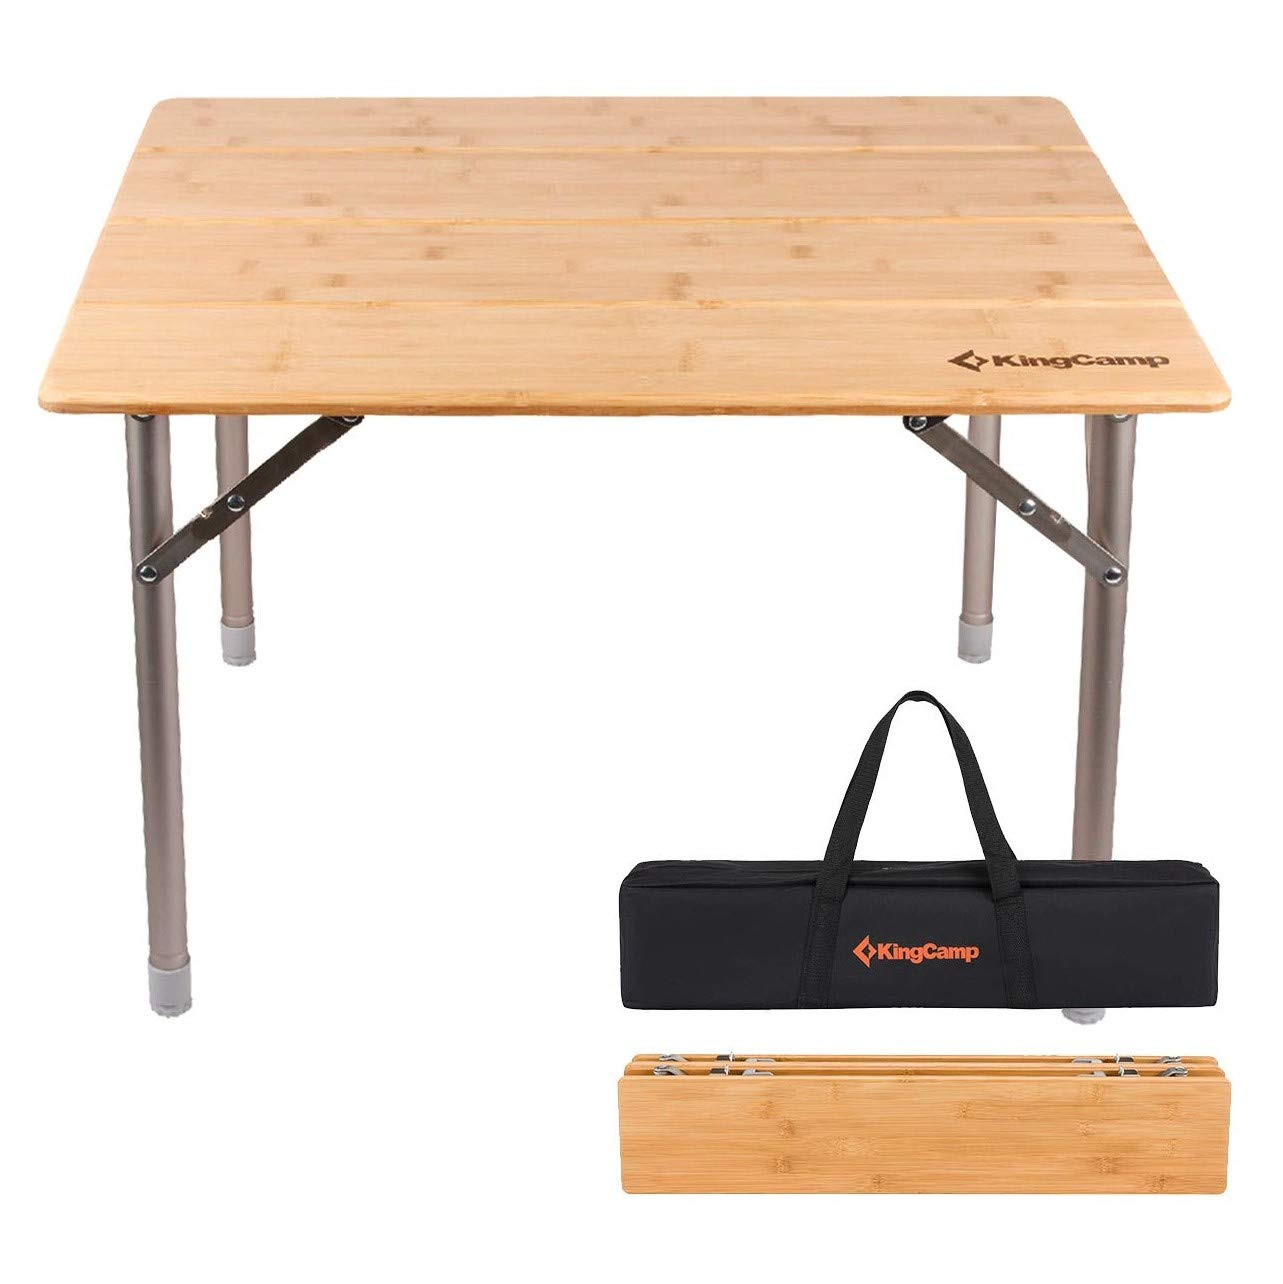 KingCamp Bamboo Folding Table with Carry Bag 4 Fold Heavy Duty Adjustable Height Aluminum Frame Camping Table (Small, Desktop 25.6 x 19.7 inch) by KingCamp